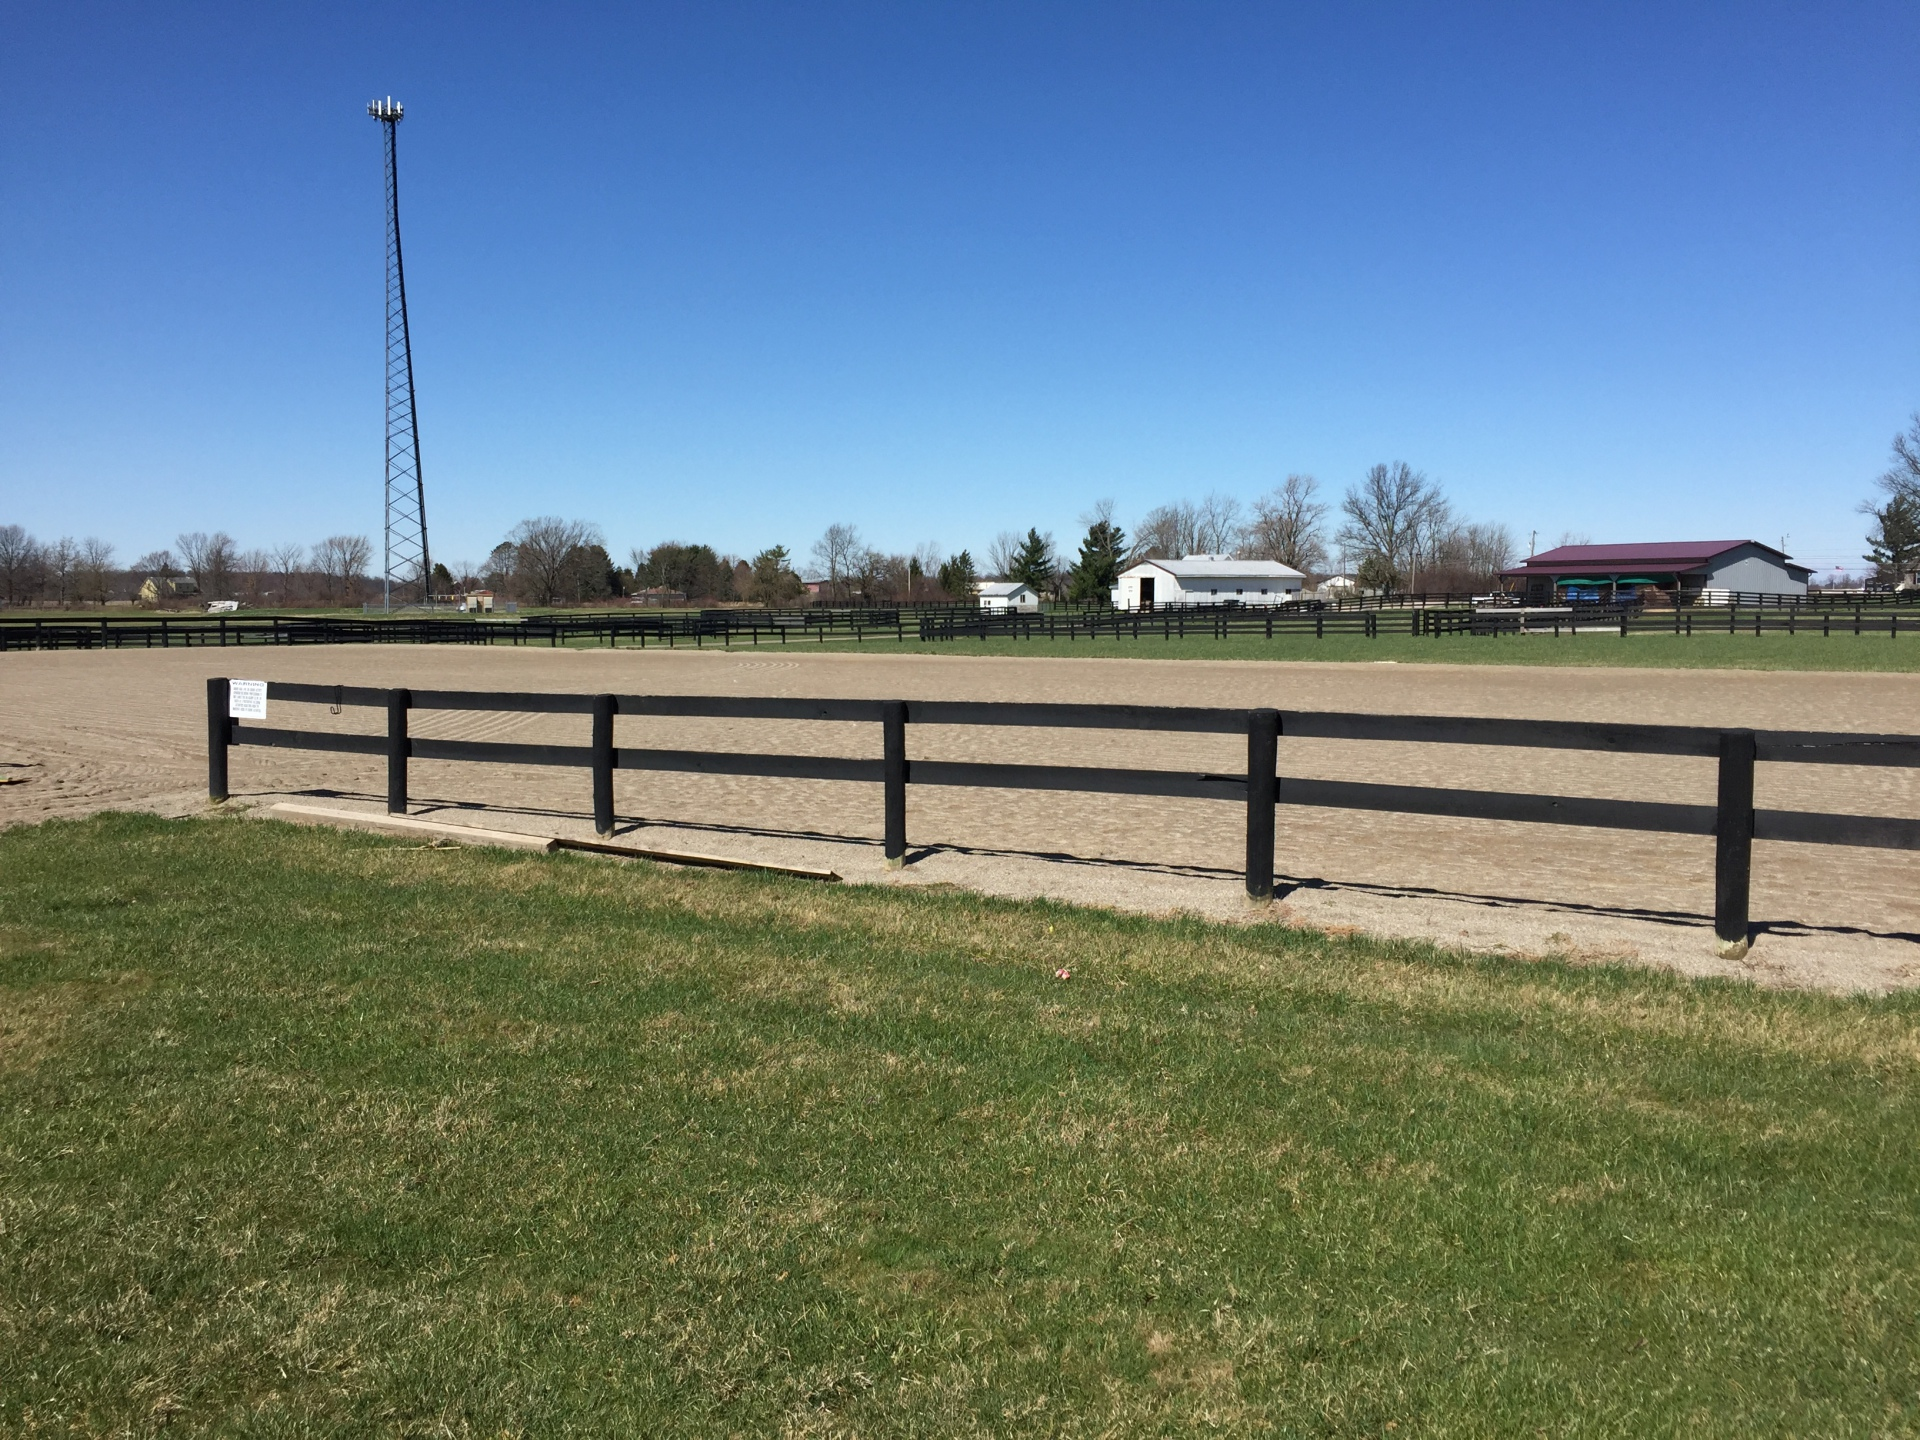 Our lovely outdoor riding arena